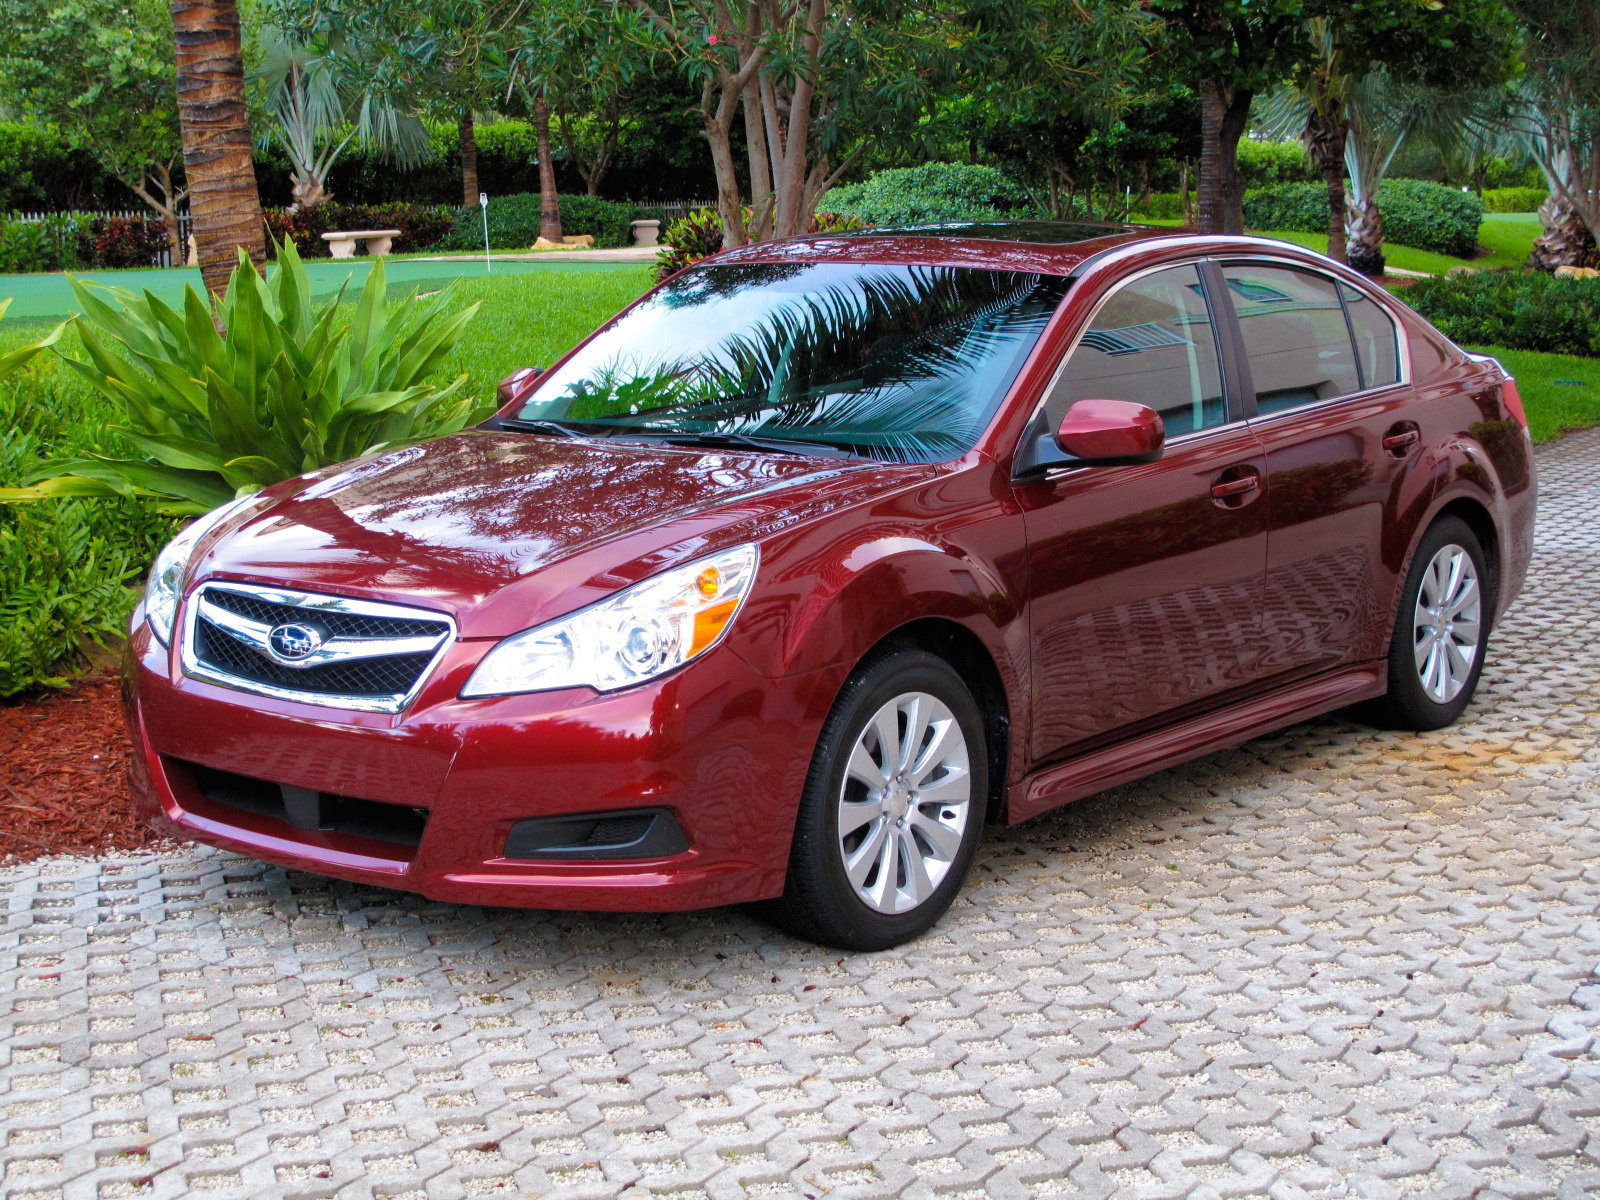 2010 subaru legacy 3 6 r picture 324097 car review top speed. Black Bedroom Furniture Sets. Home Design Ideas